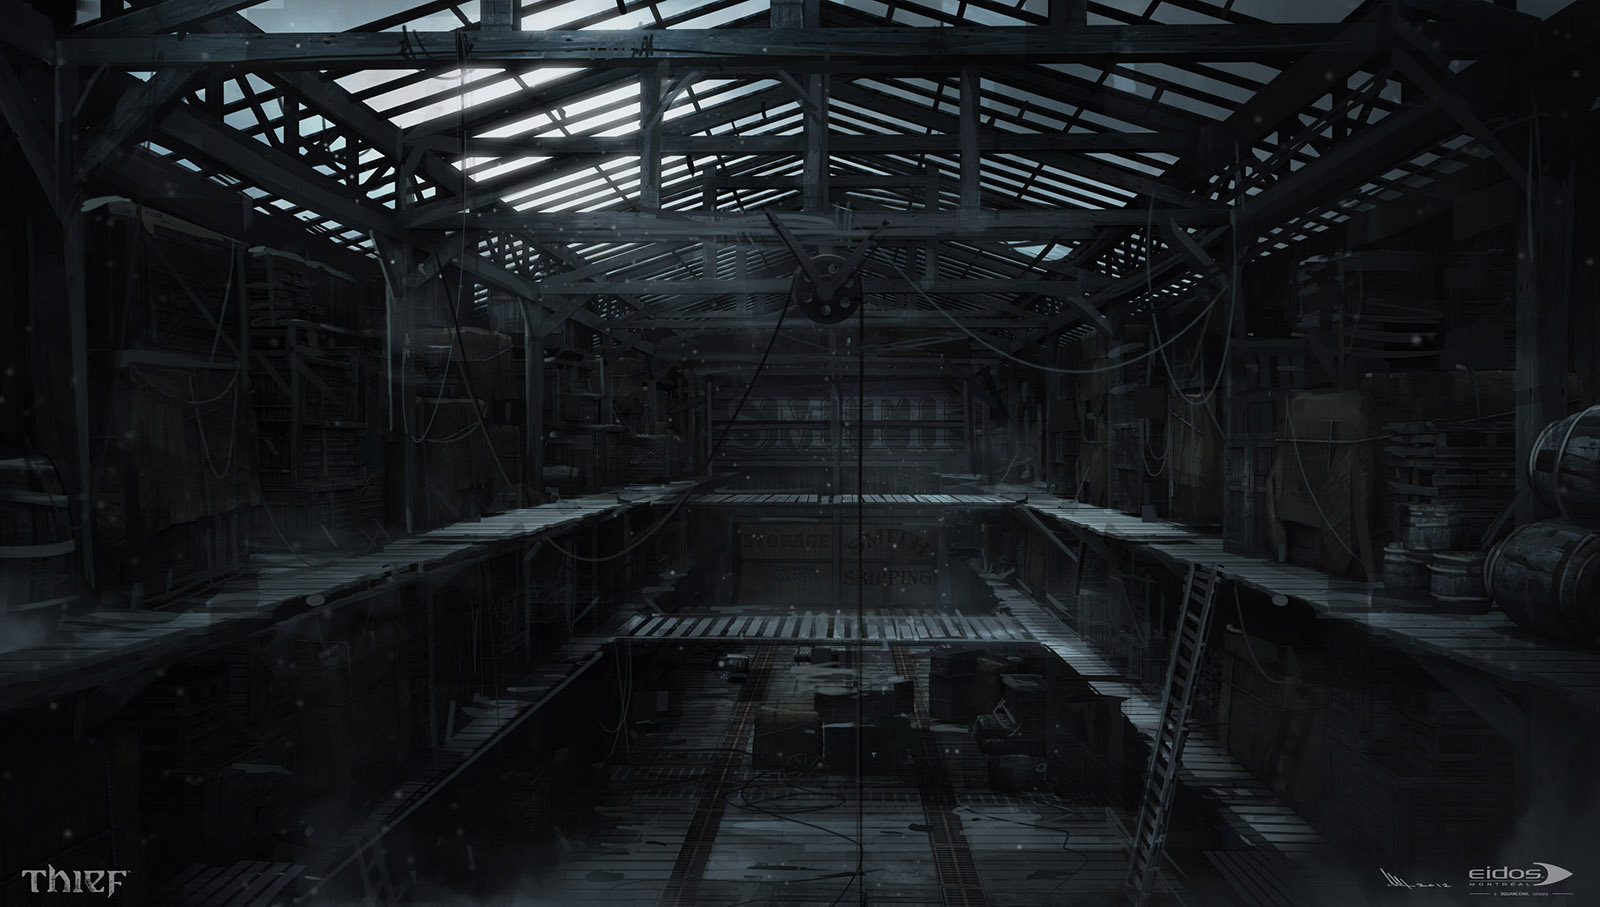 Mathieu latour duhaime warehouse inside 2012s